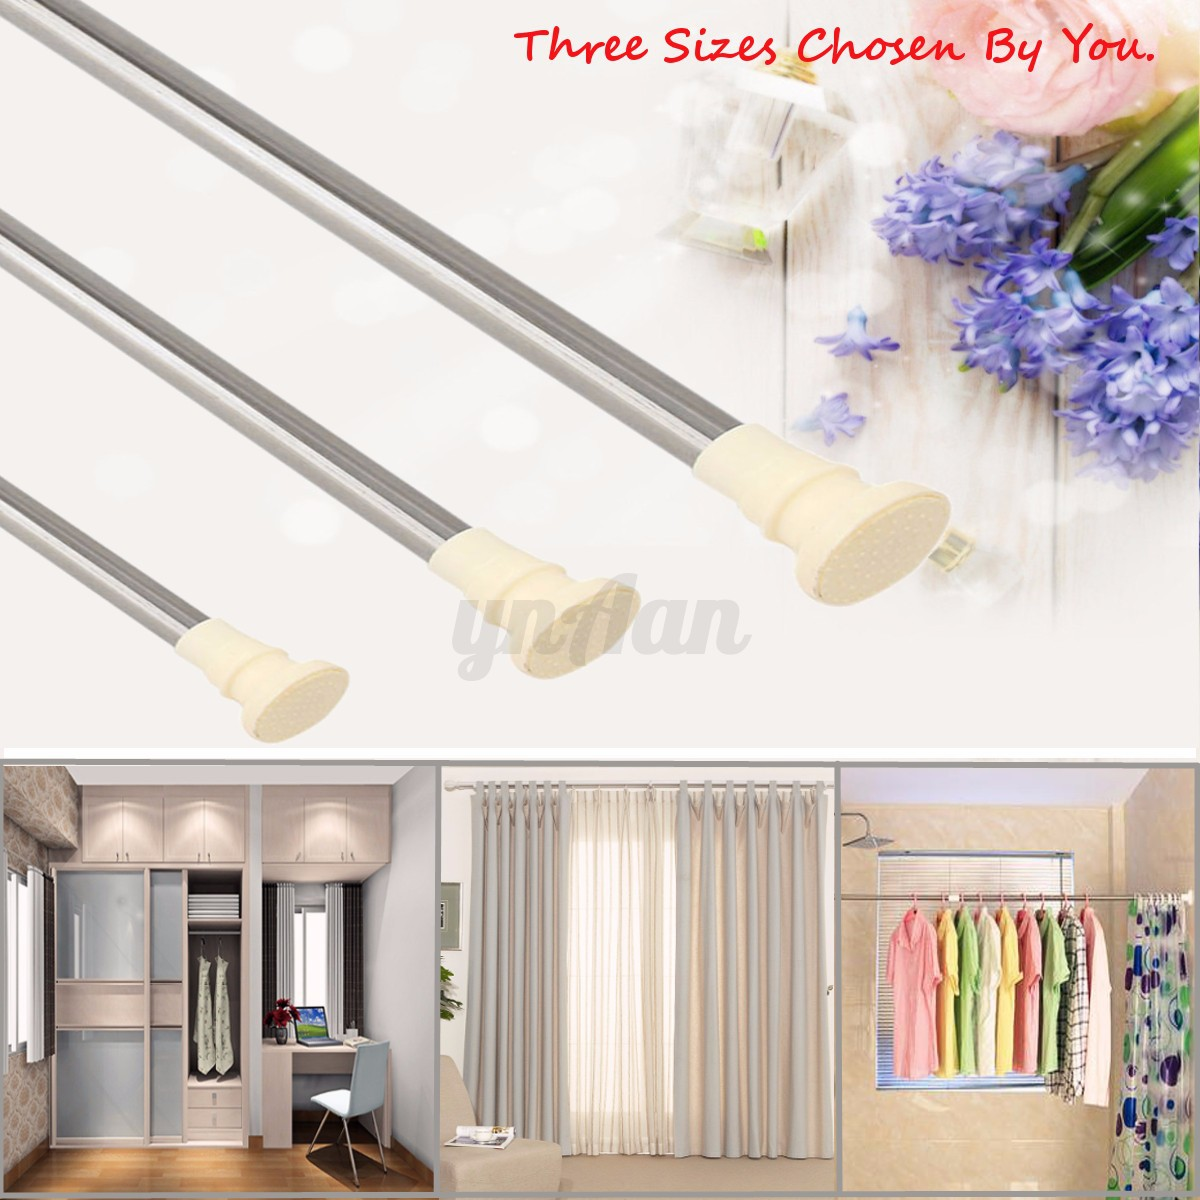 Spring loaded extendable net voile tension hanging shower curtain rail - Detail Image